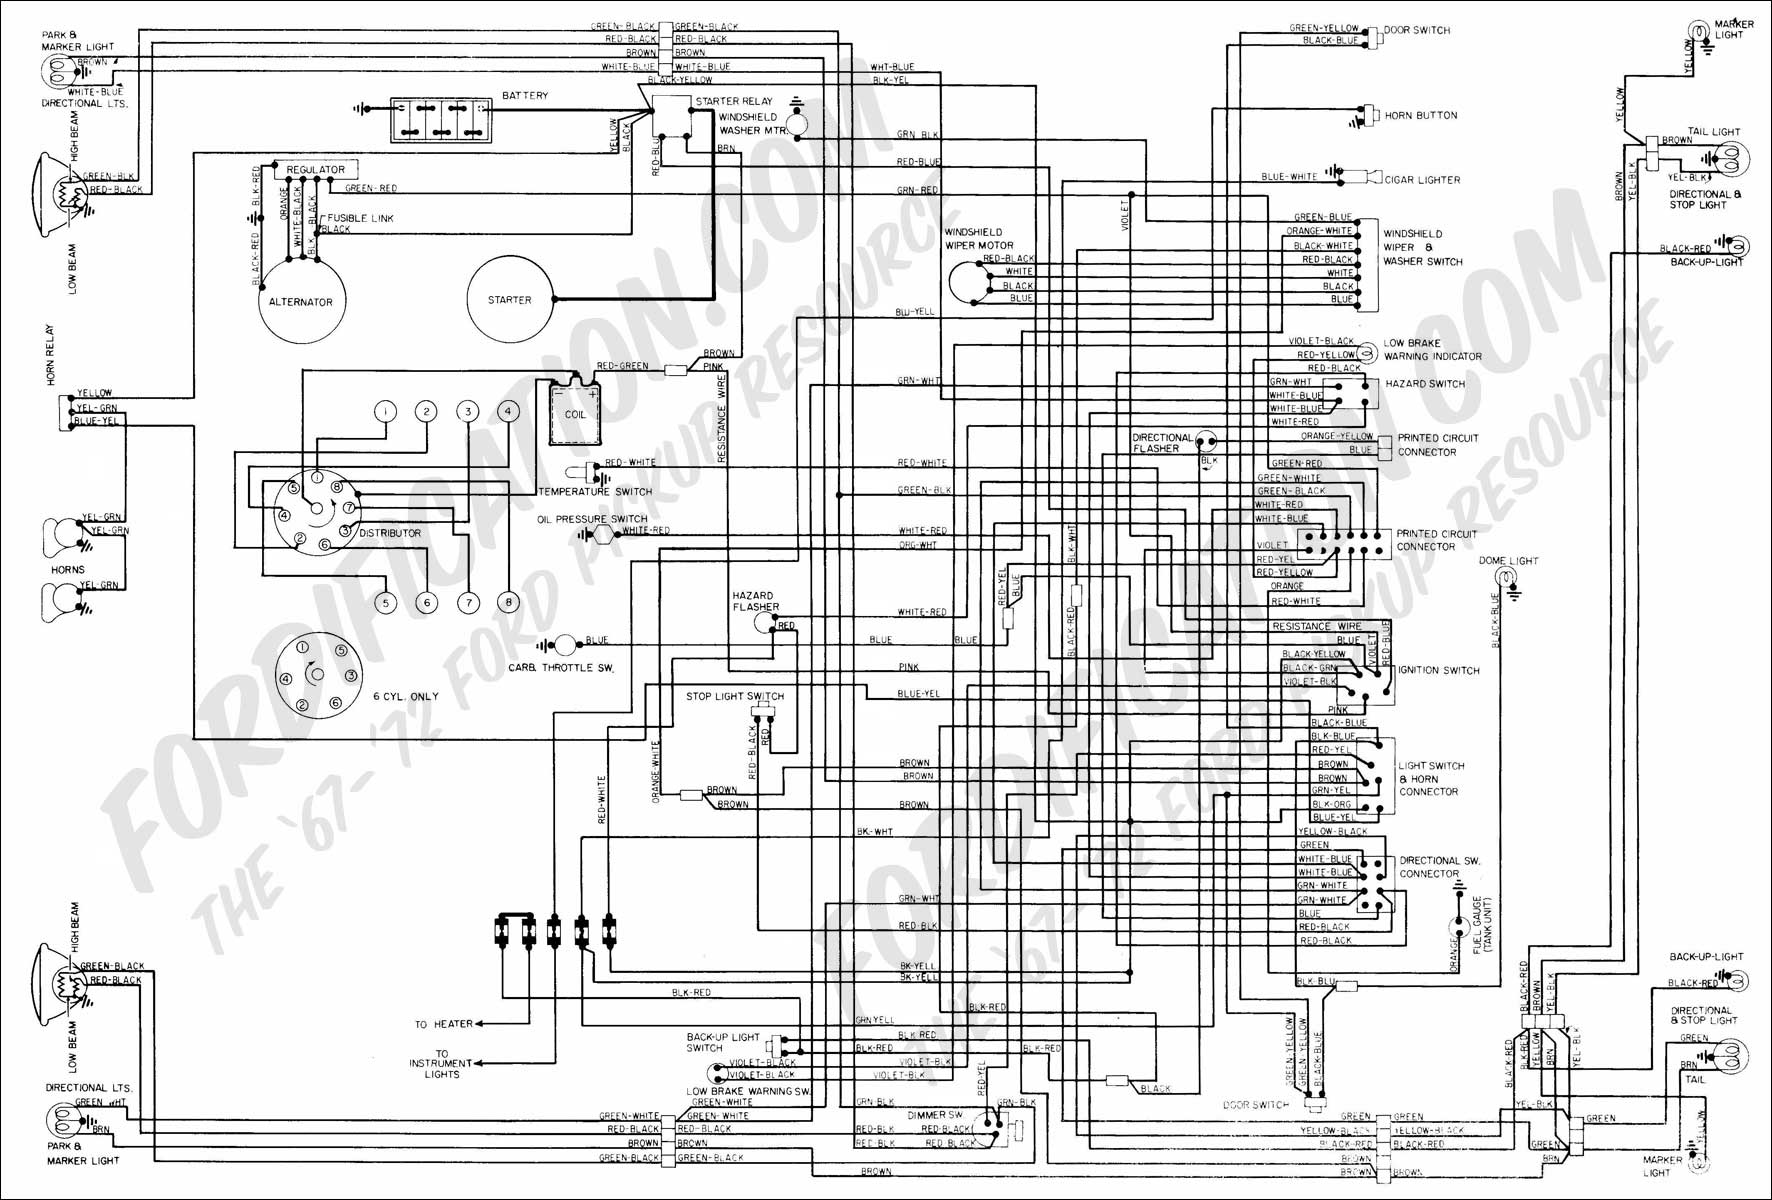 wiring diagram 72_quick i have a 90 f150 and about 2 months ago it wouldn't start the 1987 ford f150 fuel pump wiring diagram at soozxer.org